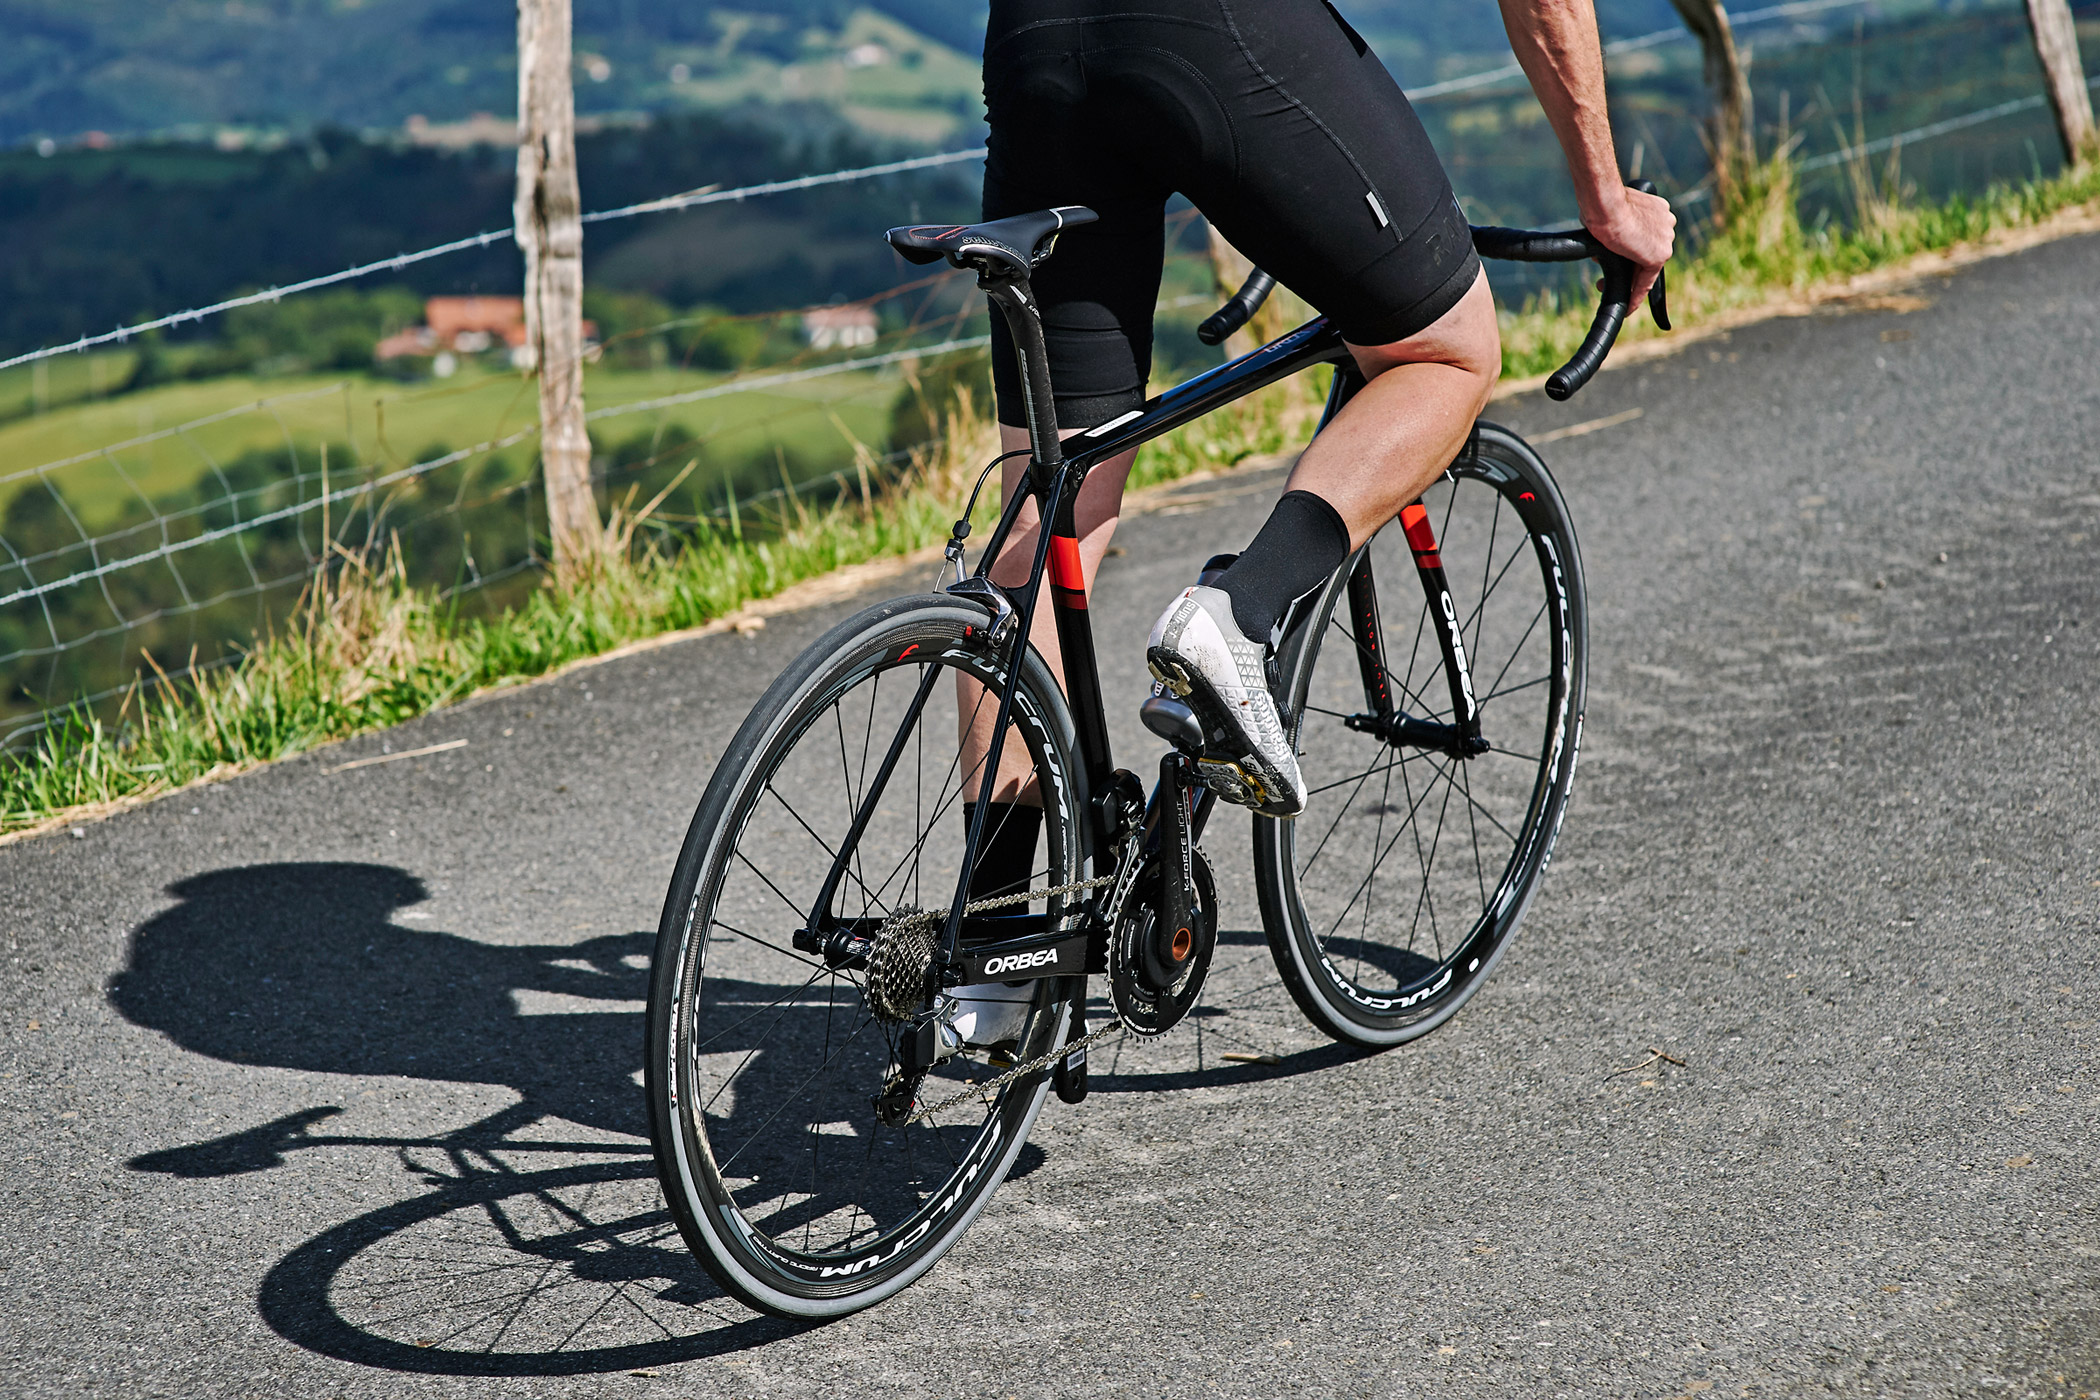 New Orbea Orca Omr A Detailed Look At The New Premium Road Bike